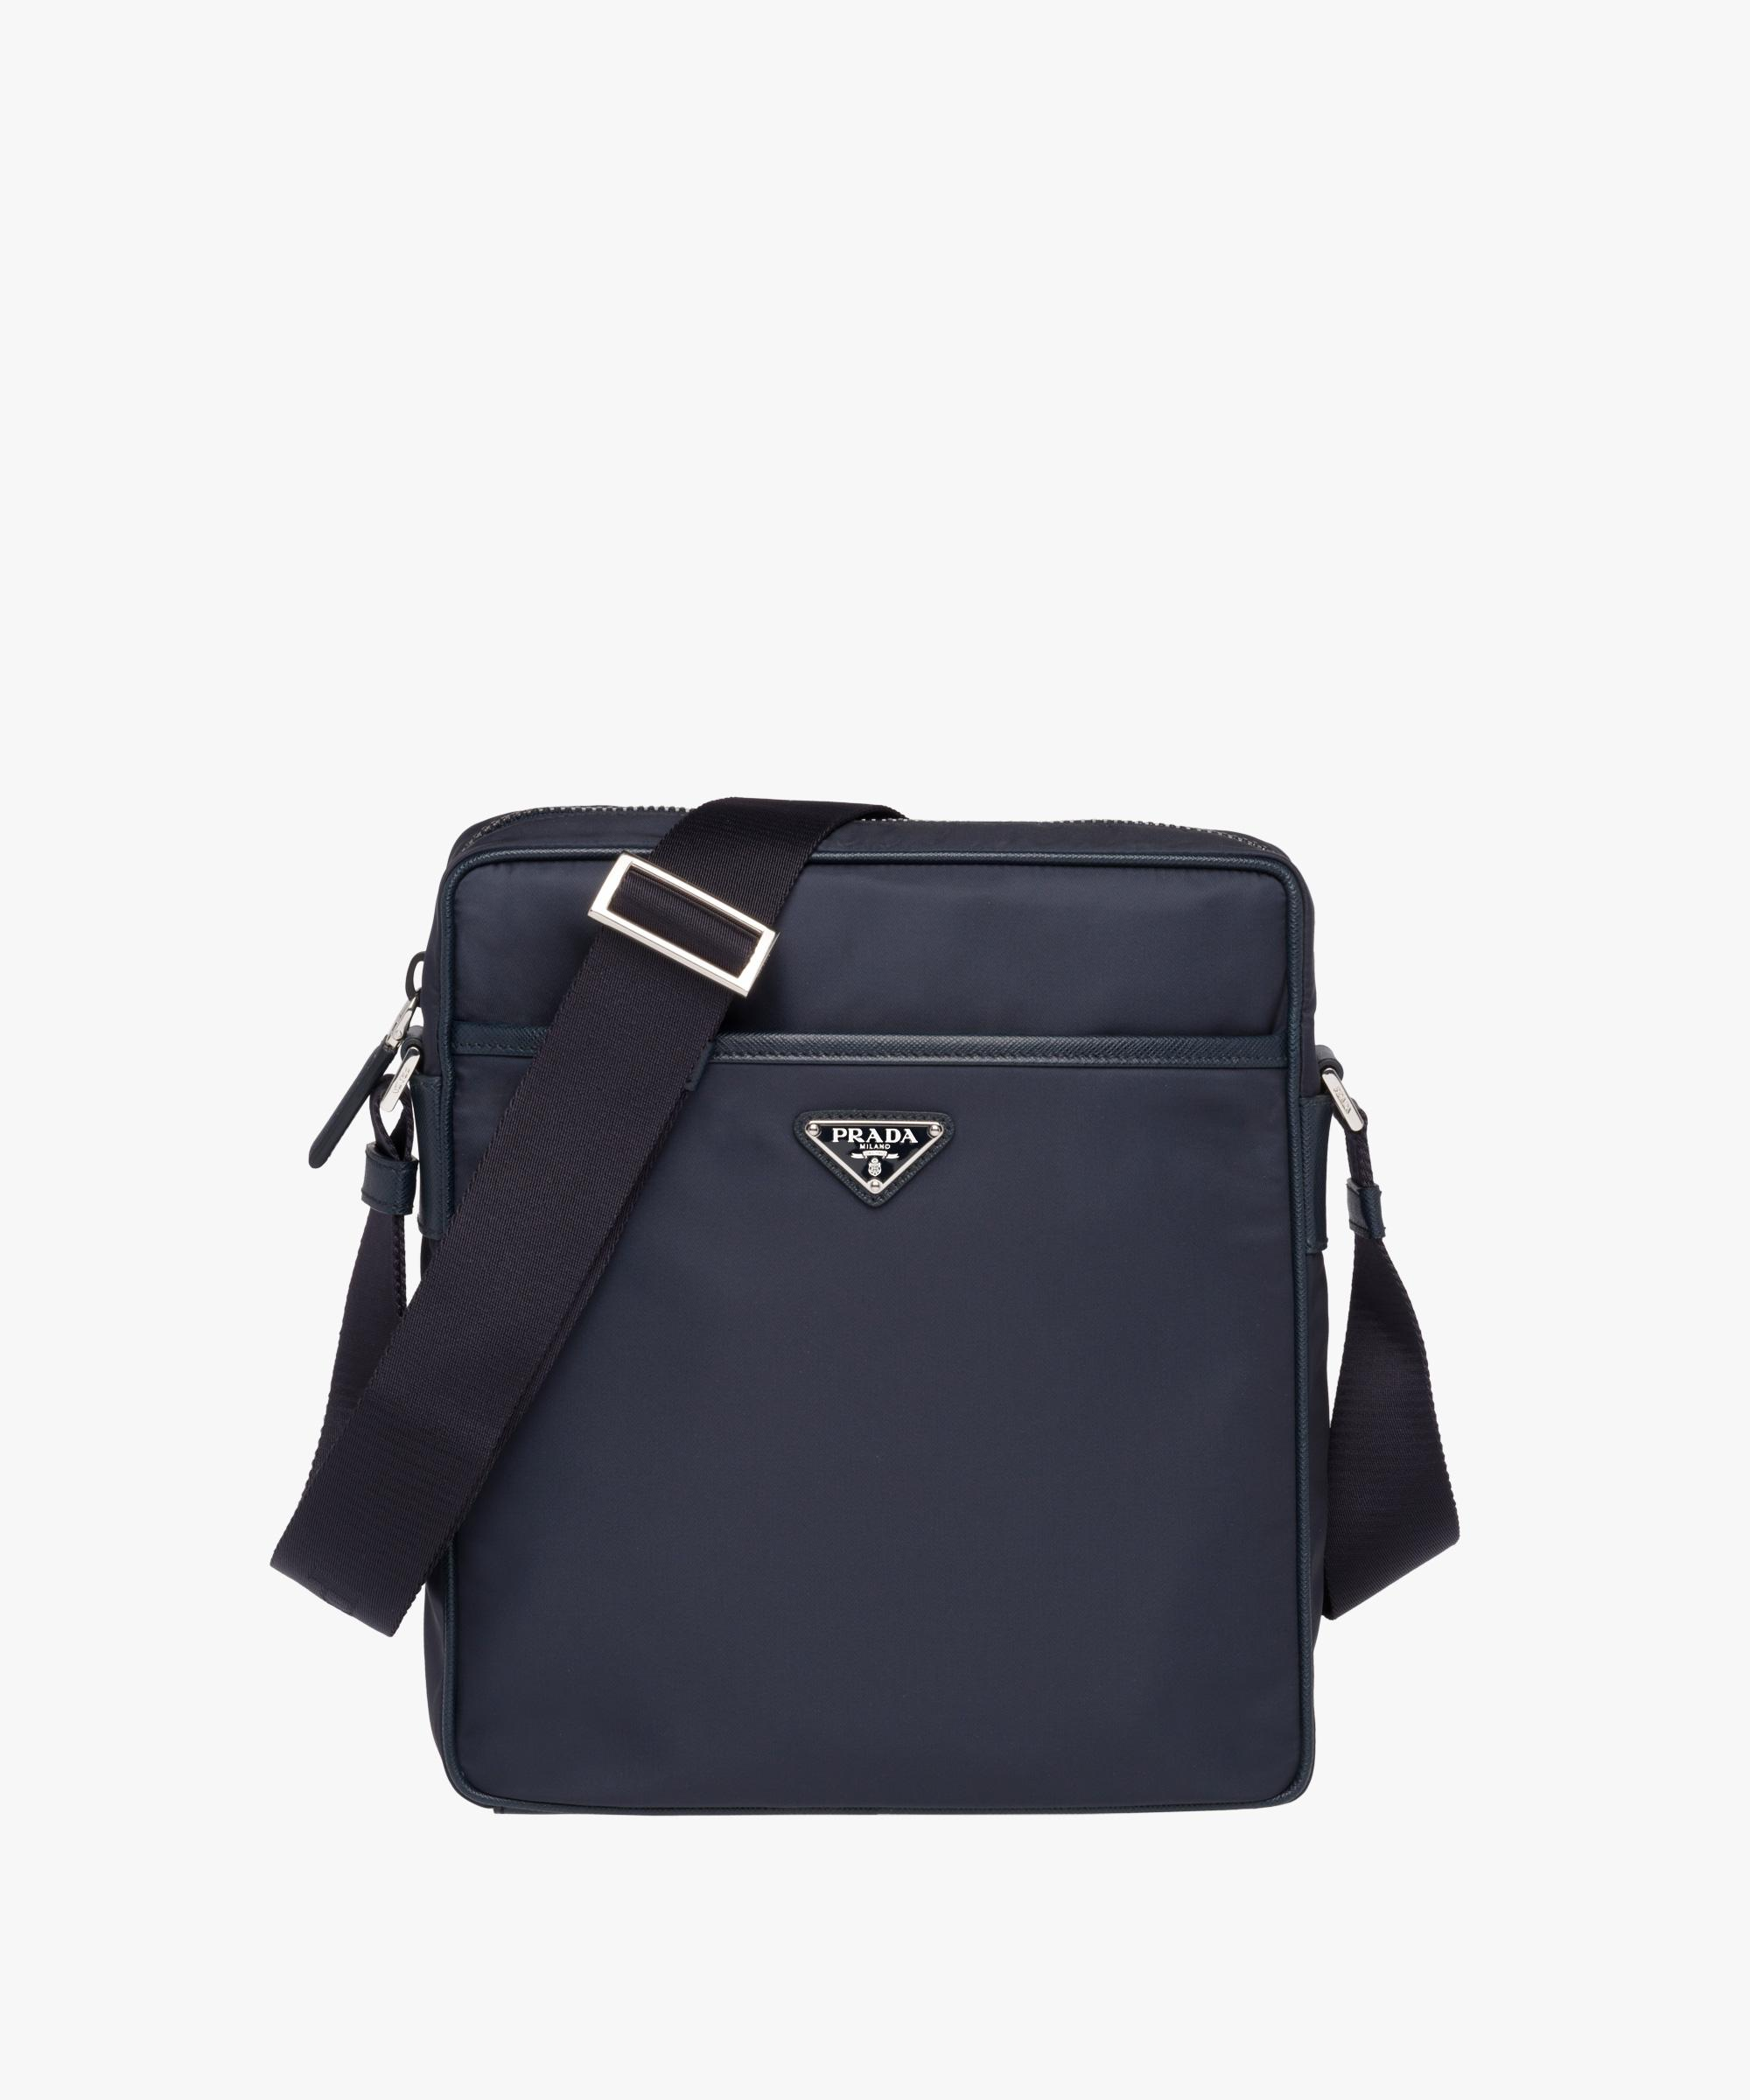 51556d014159 ... wholesale lyst prada messenger bag in blue for men 520f3 636d5